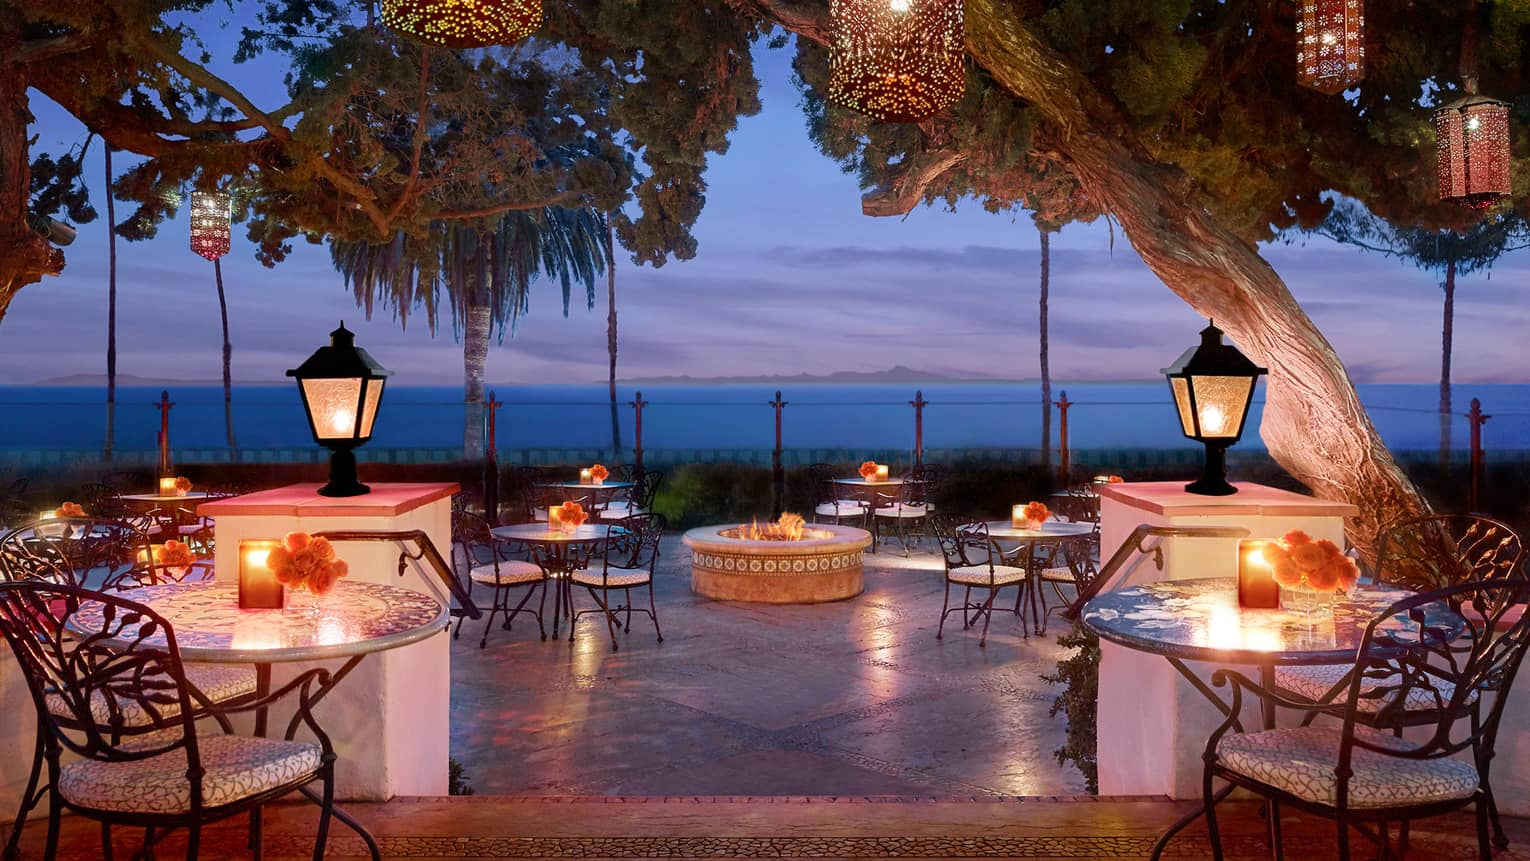 Bella Vista patio at dusk with candle-lit tables under lanterns on posts, hanging from trees